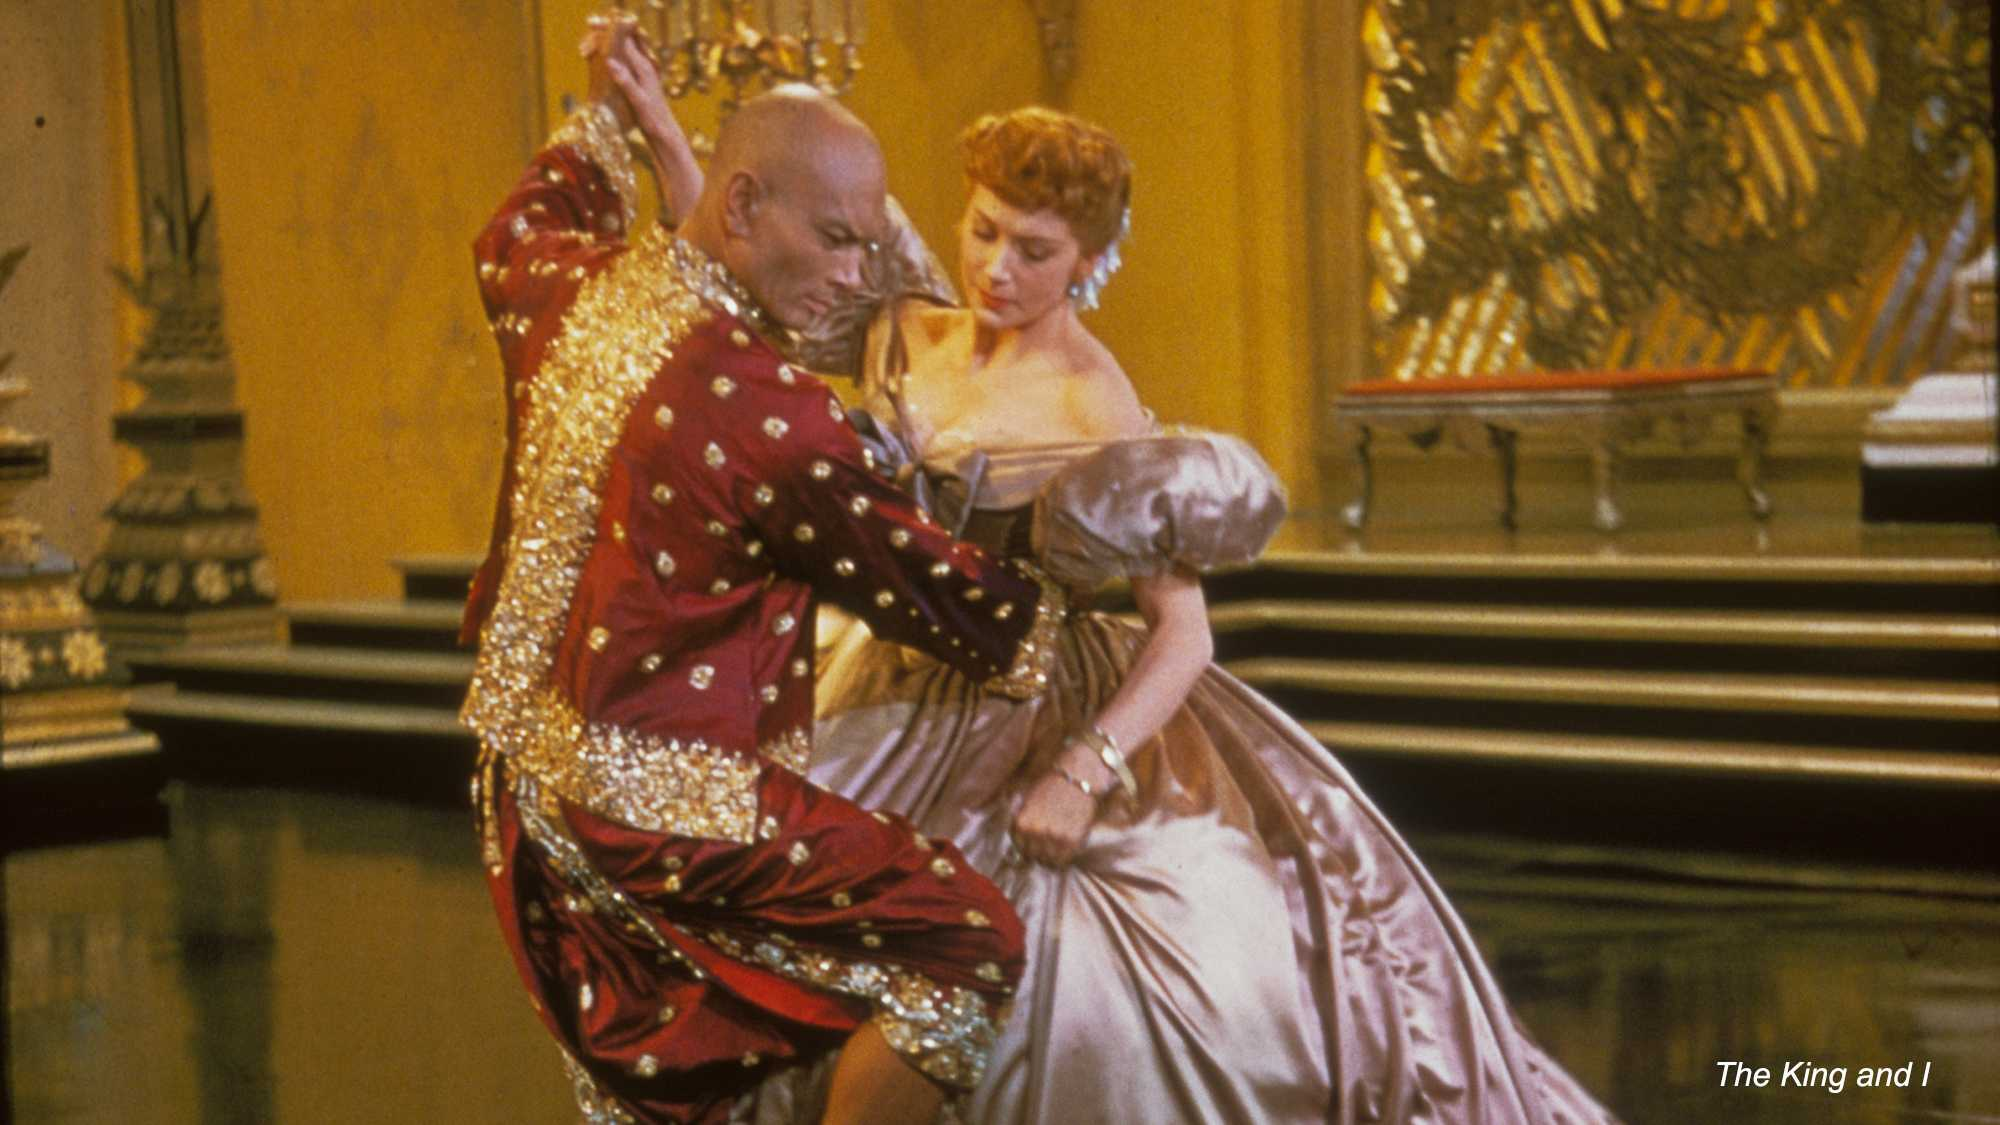 The King and I (image 1)